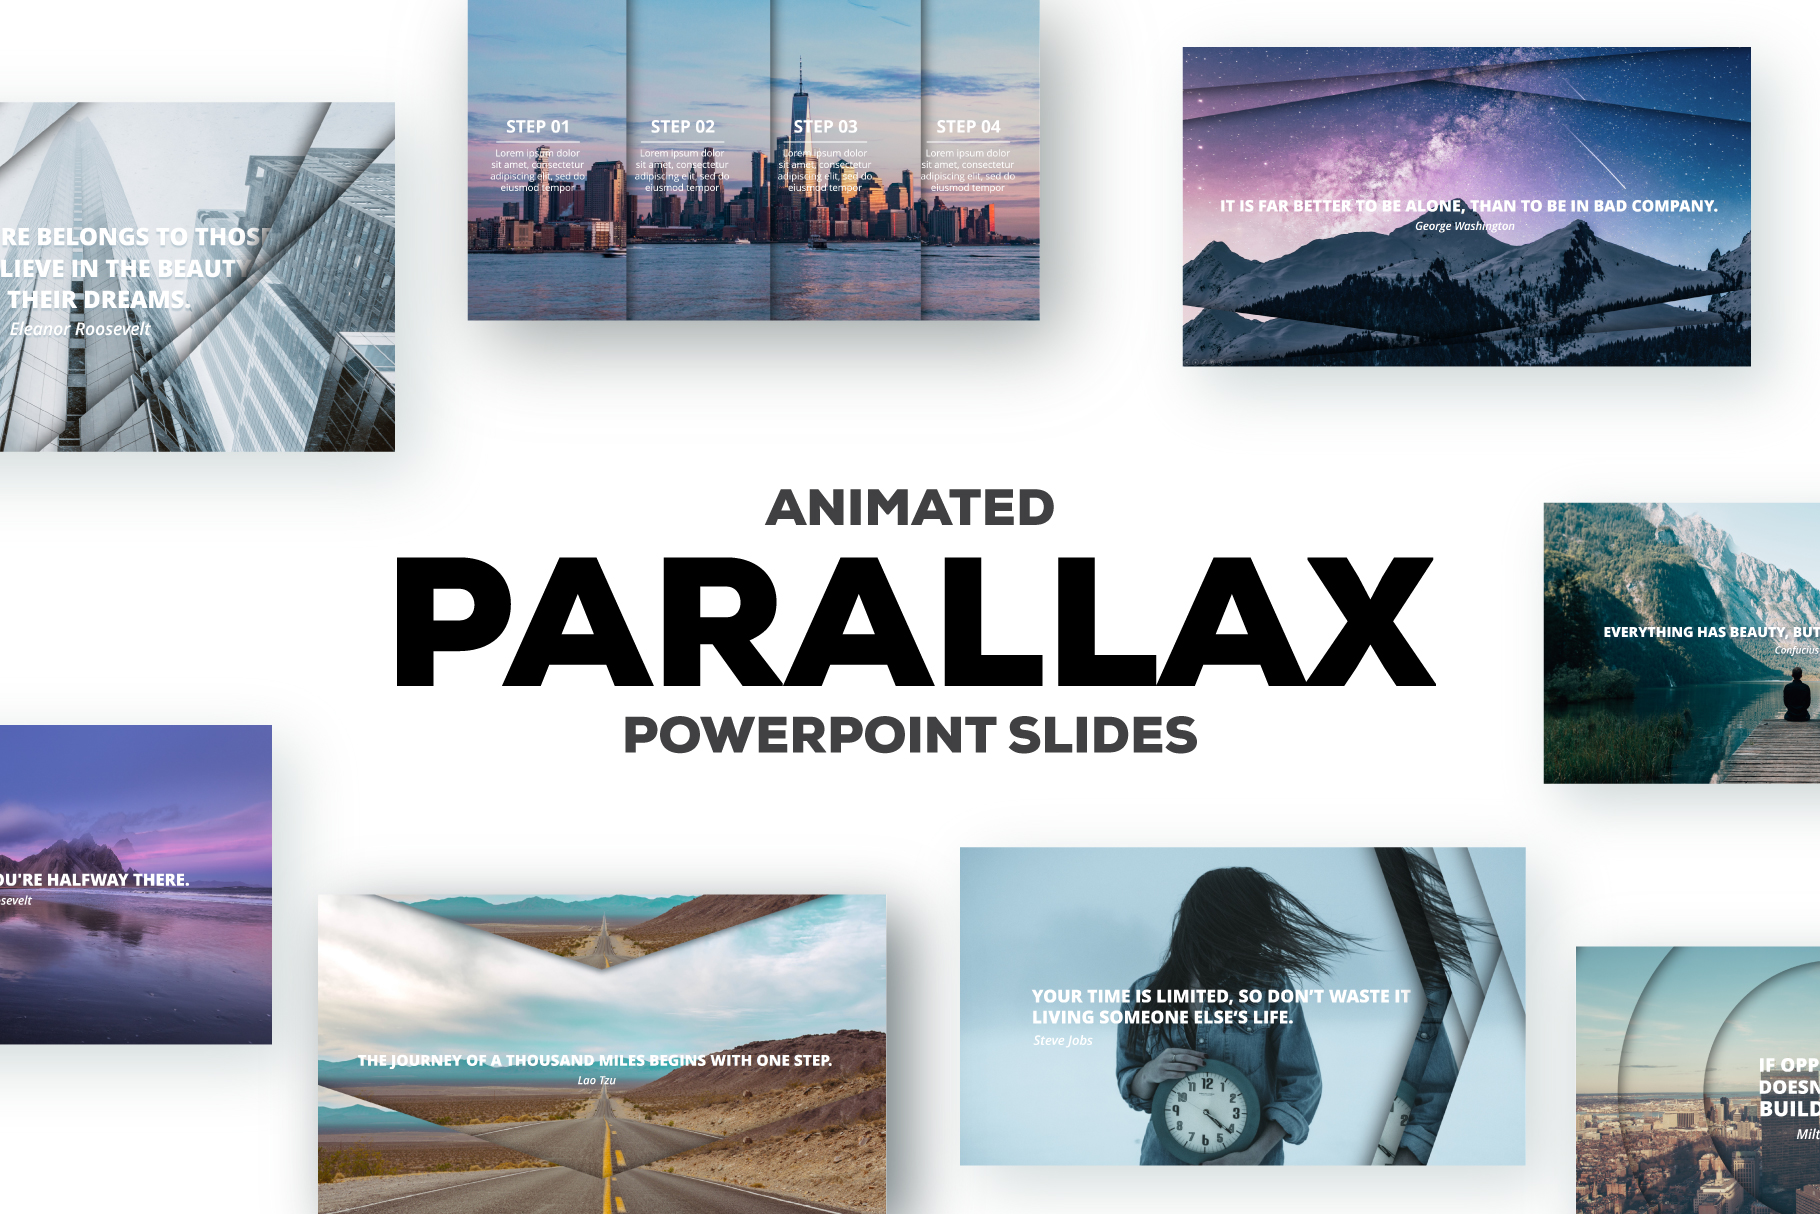 Parallax effect powerpoint slides example image 1